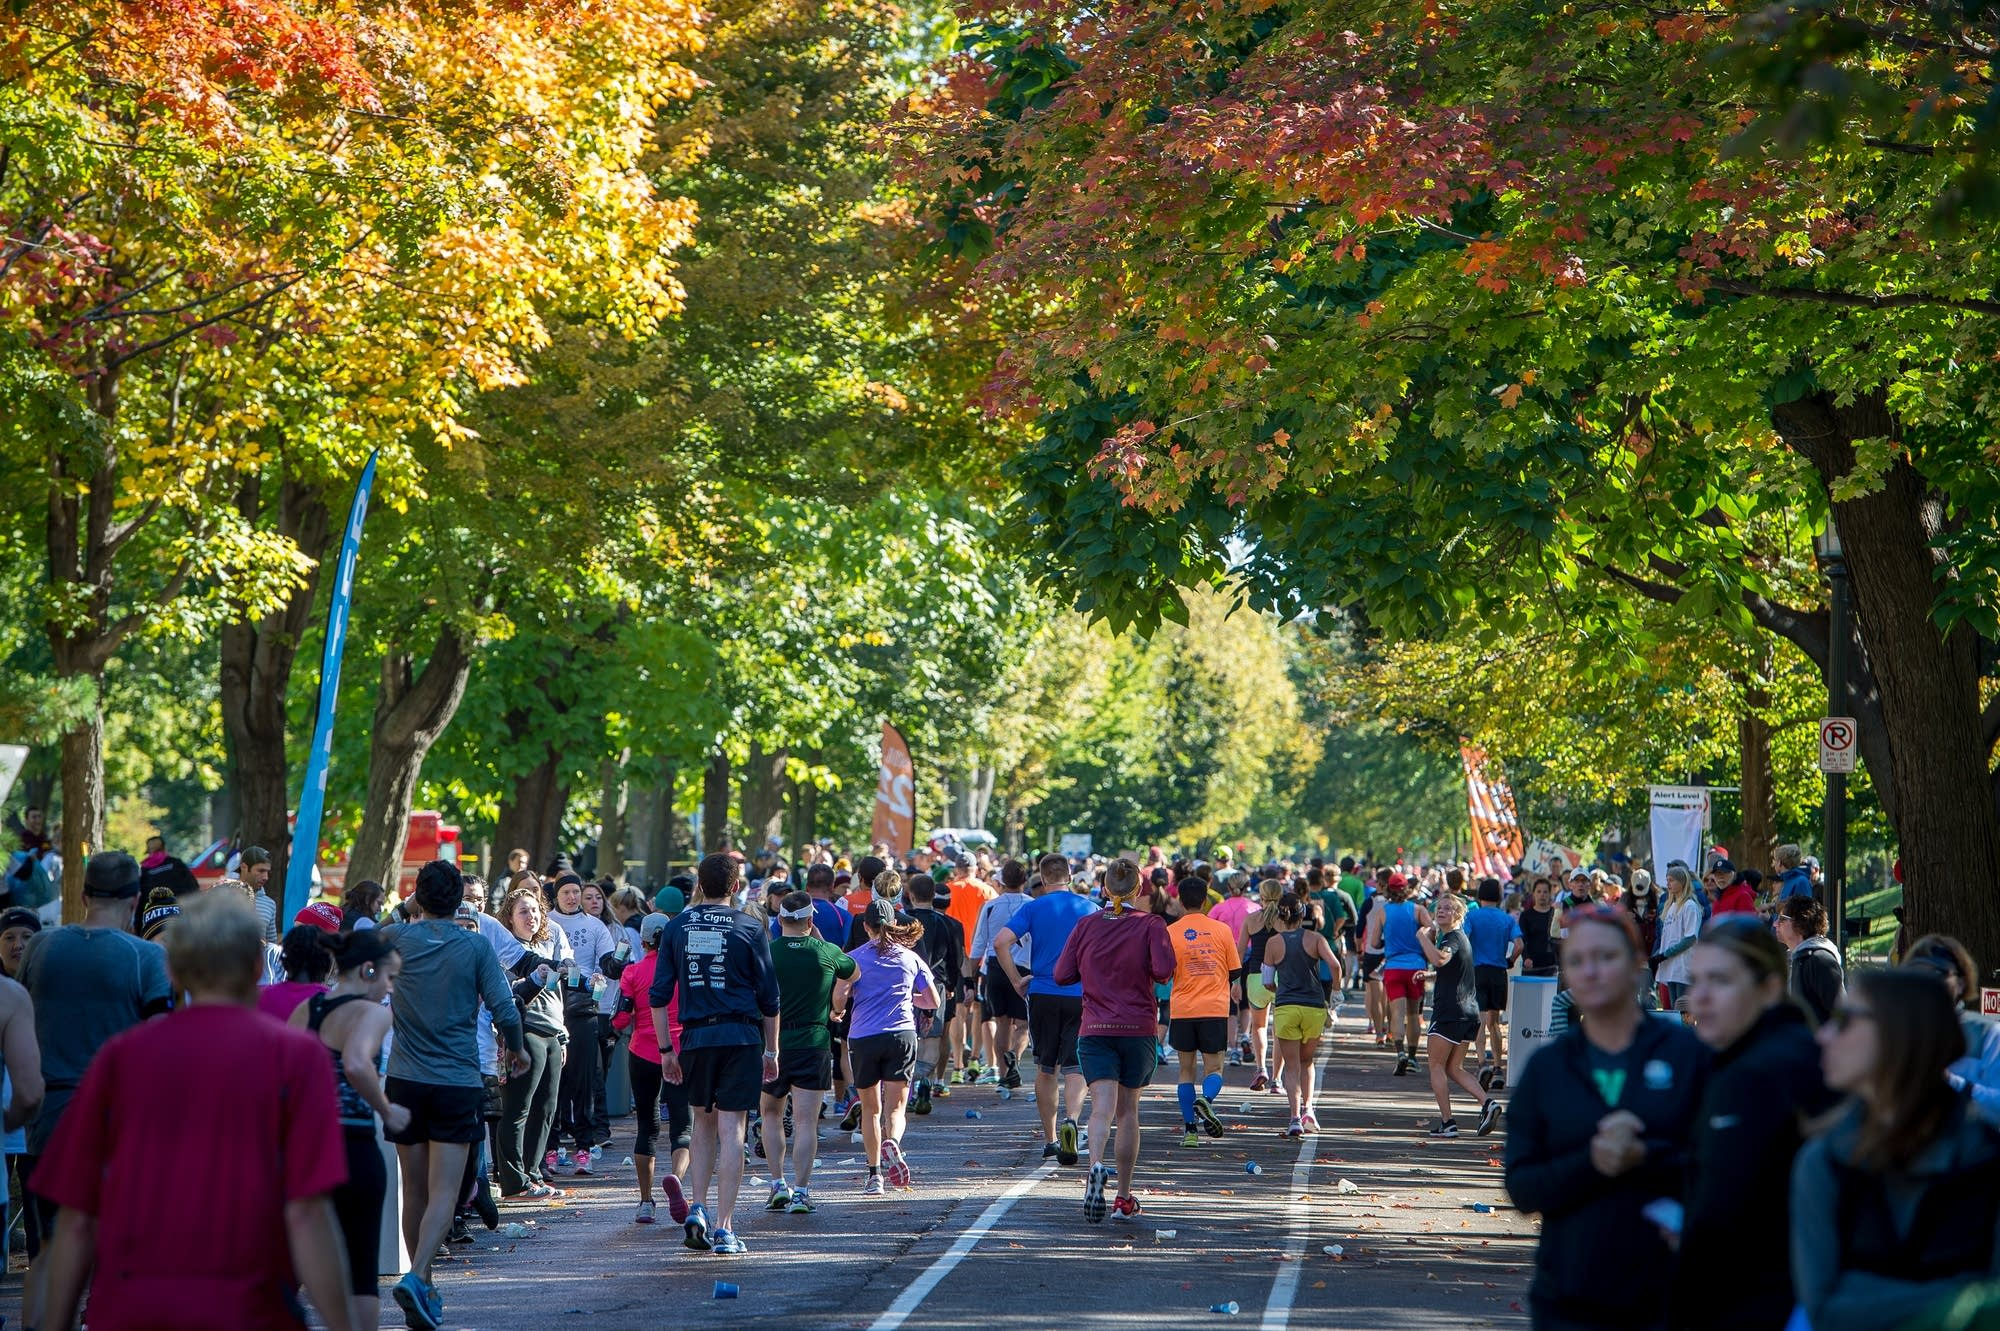 Runners pass under the tree canopy along Summit.